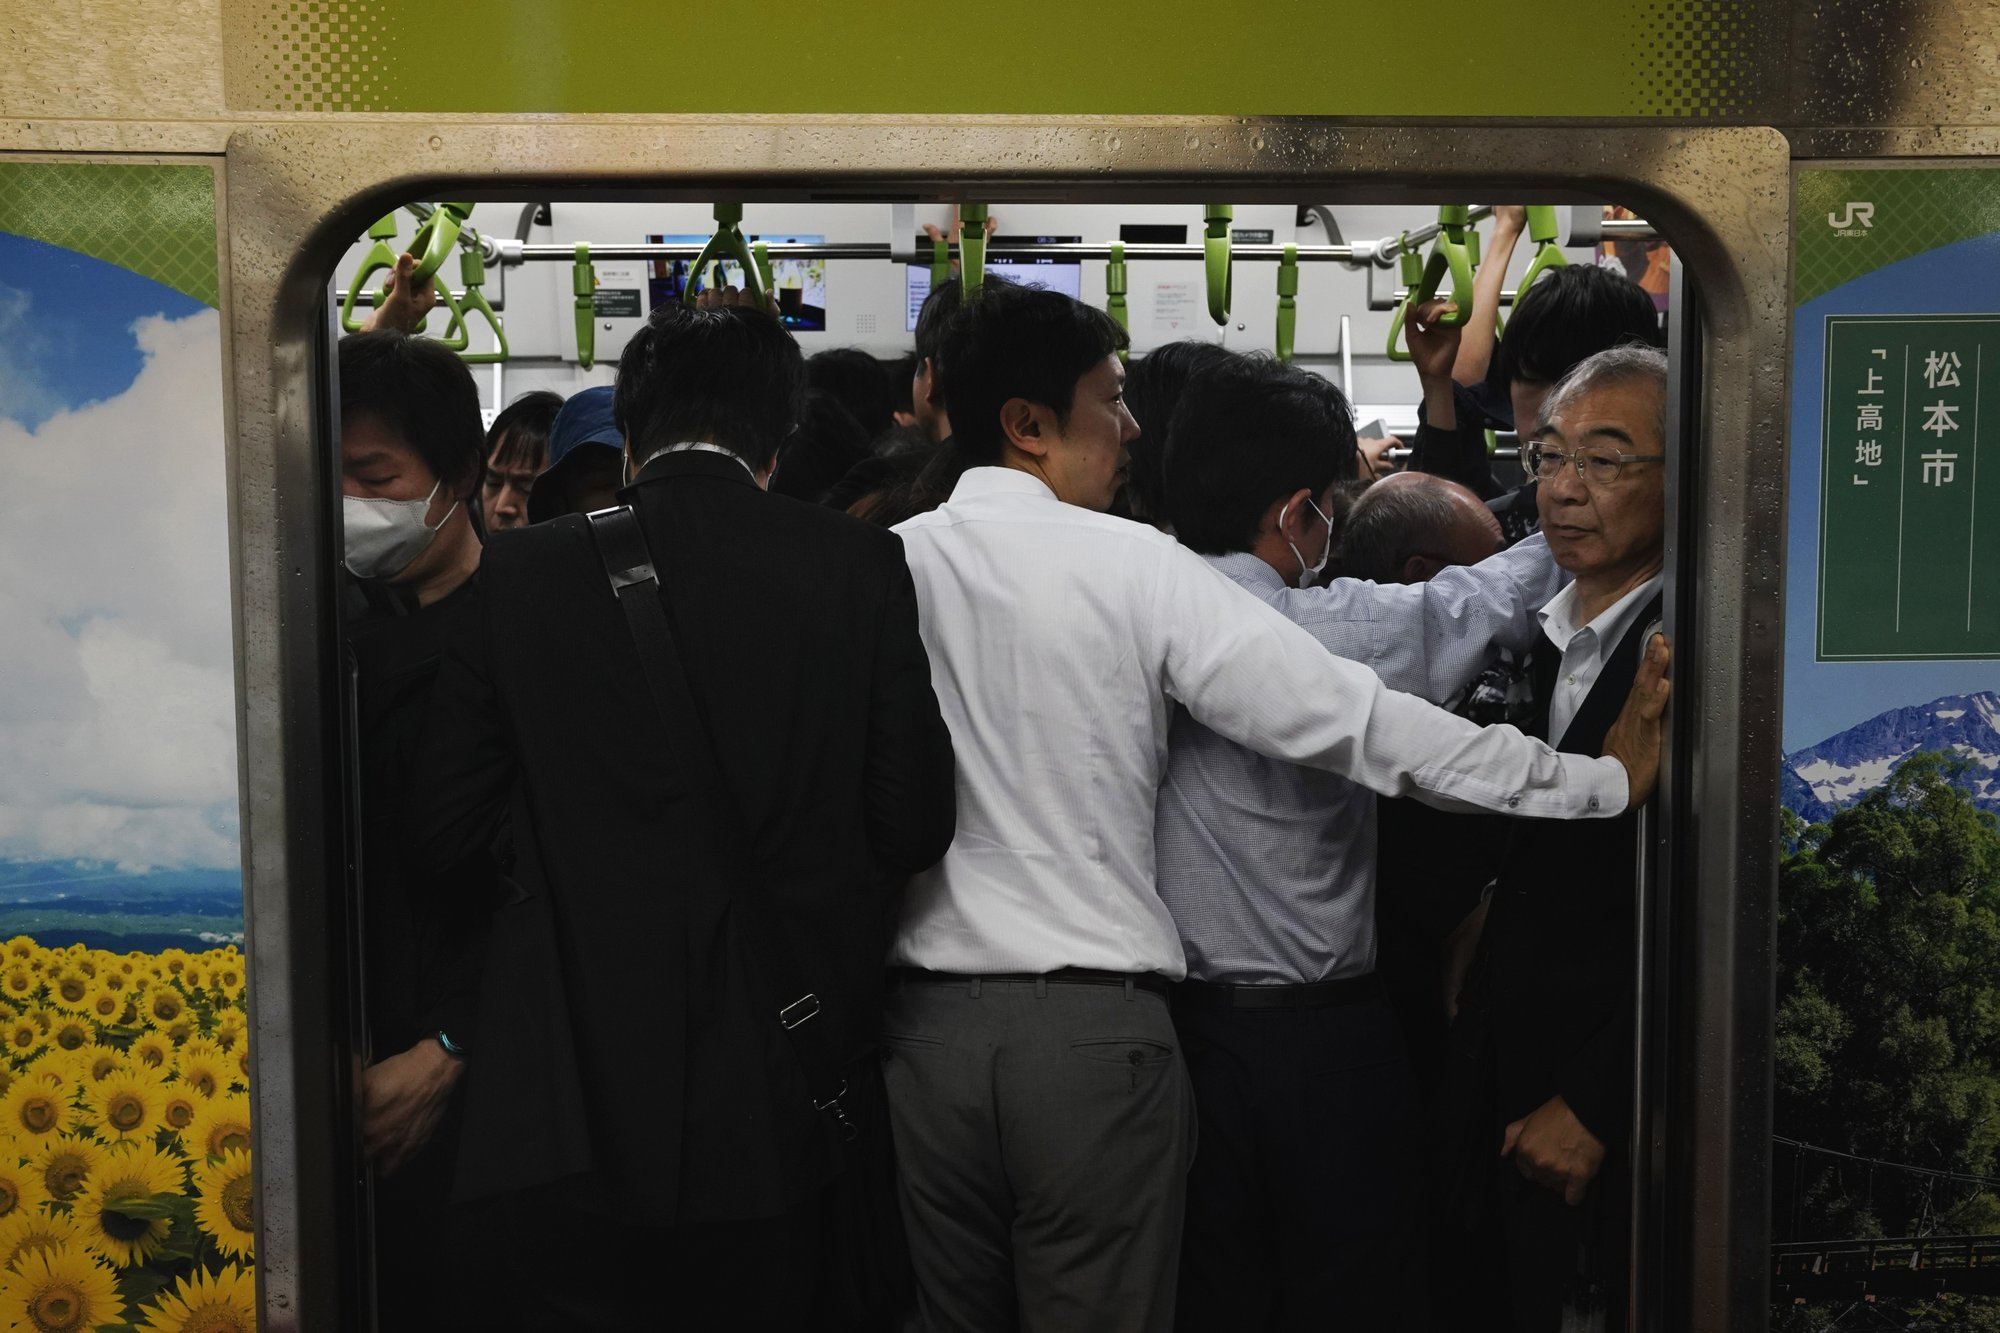 AP Photos: In the loop: Tokyo seen from commuter train line